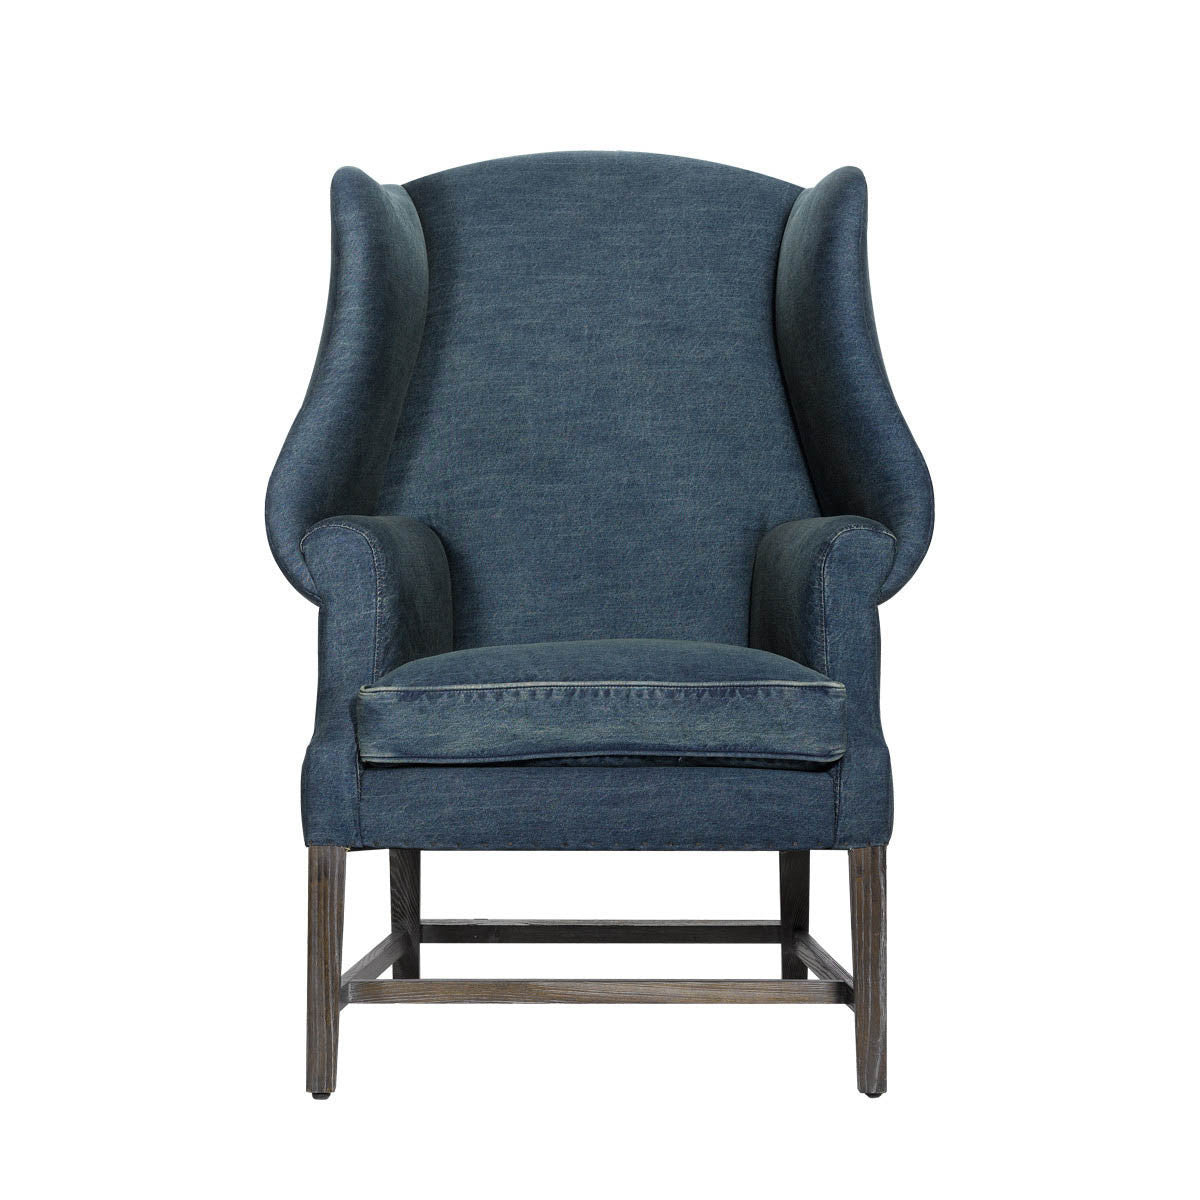 Curations Limited New Age Denim Chair